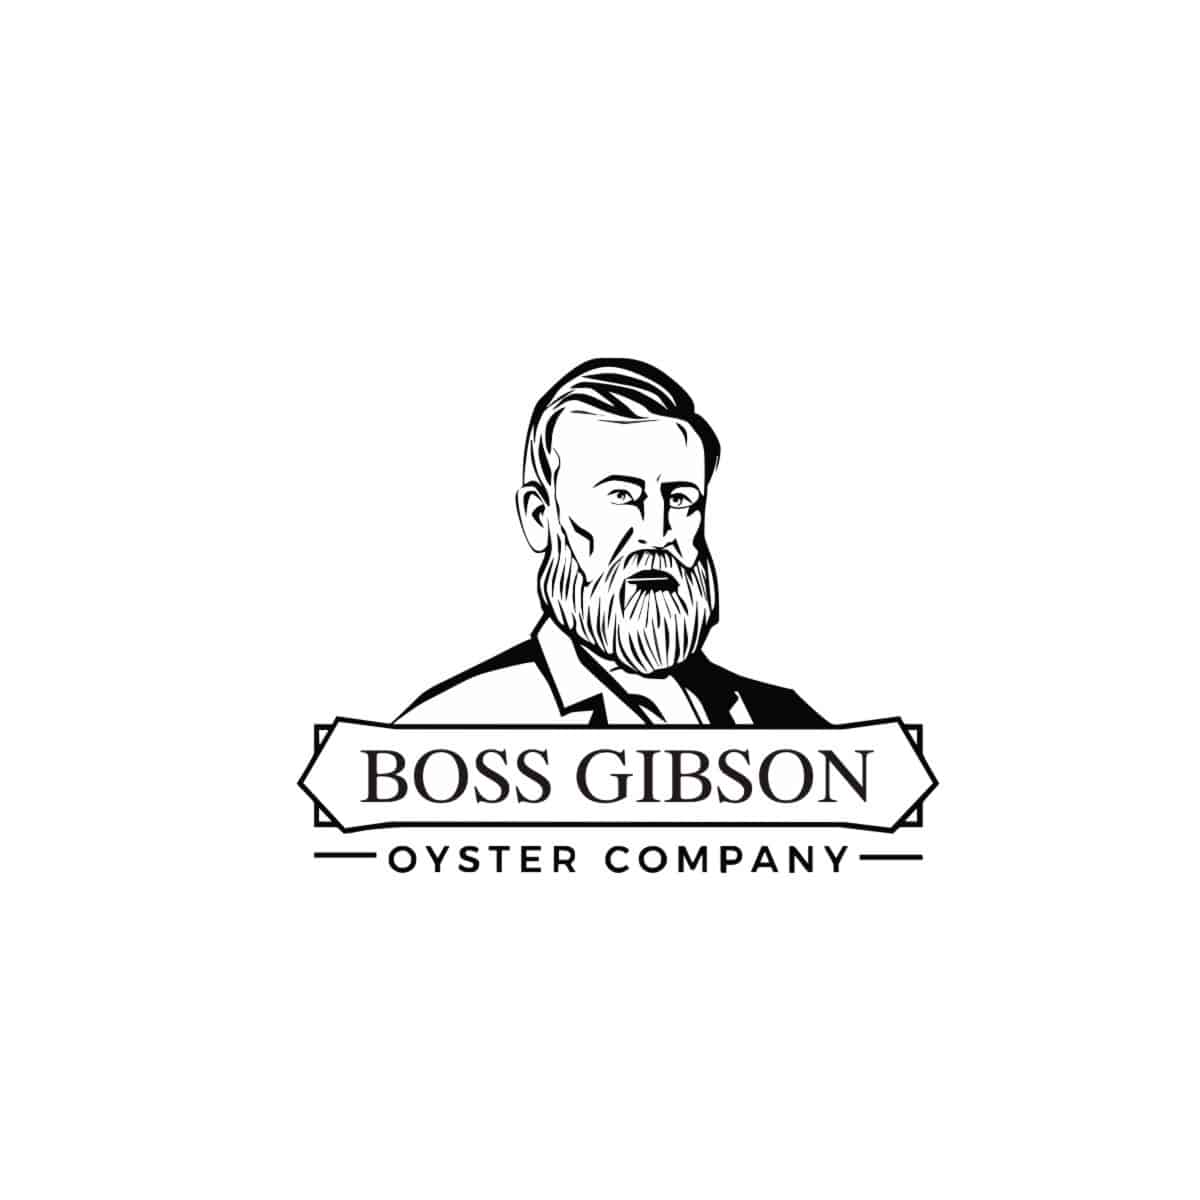 Boss Gibson Oyster Company